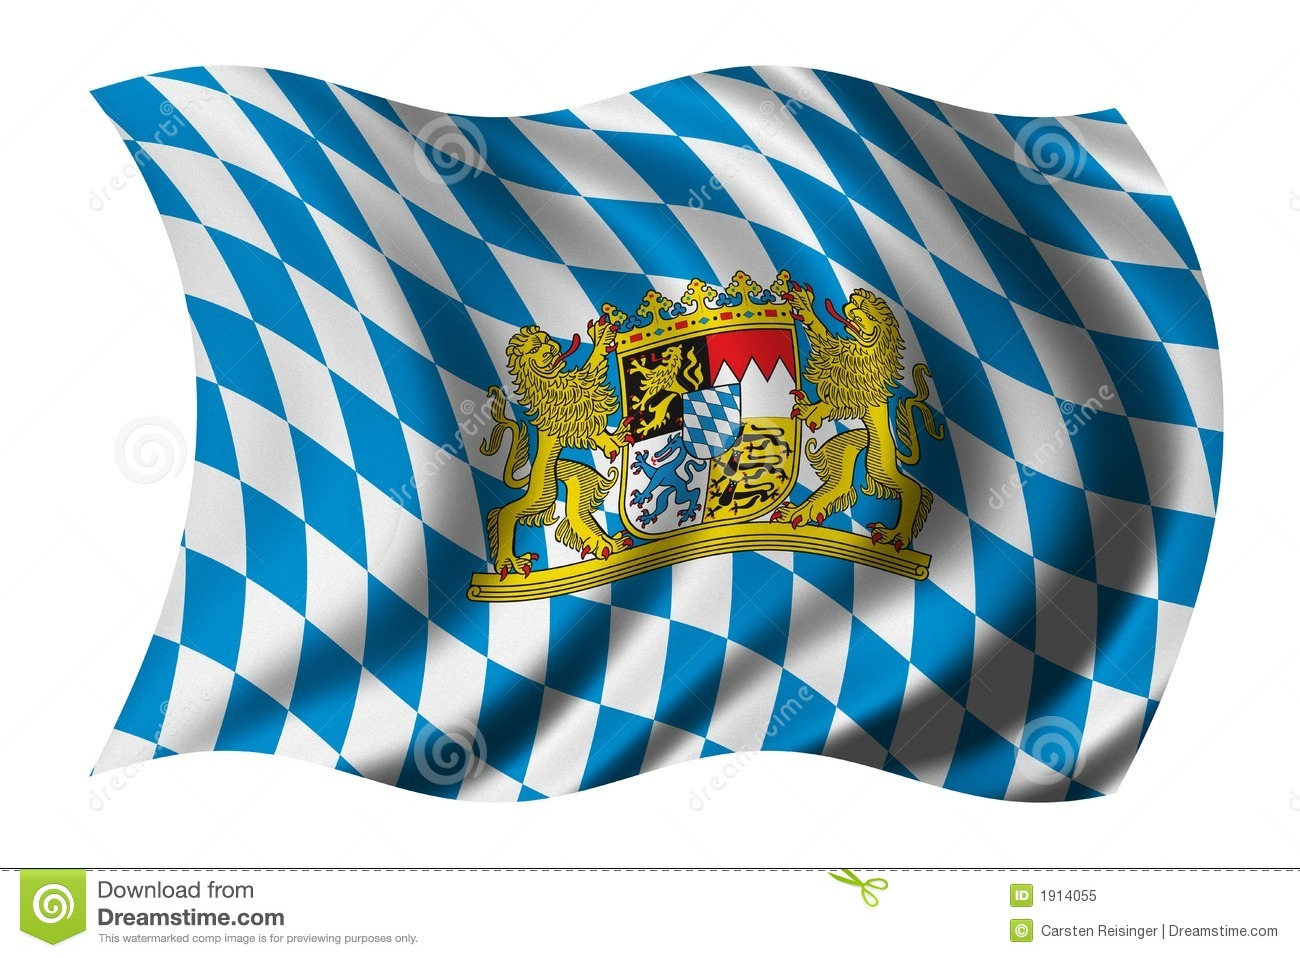 Flag of Bavaria waving in the wind - clipping path included.